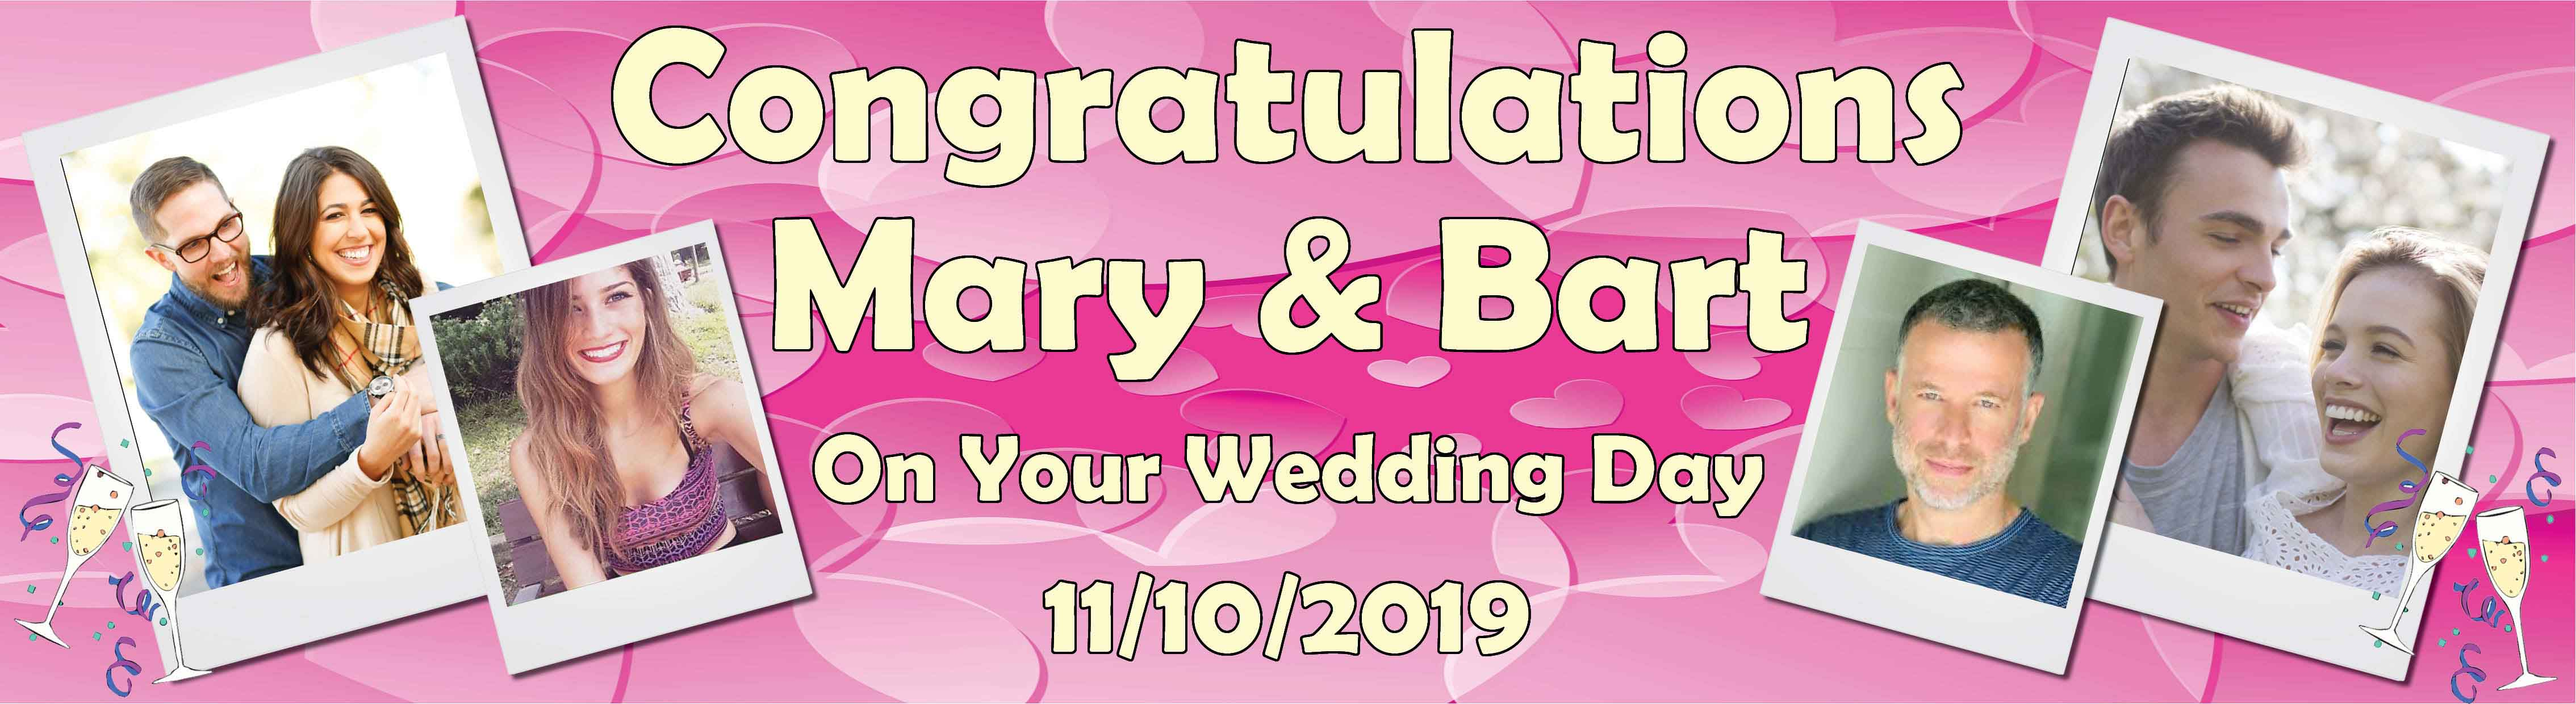 Wedding Day Banner 4